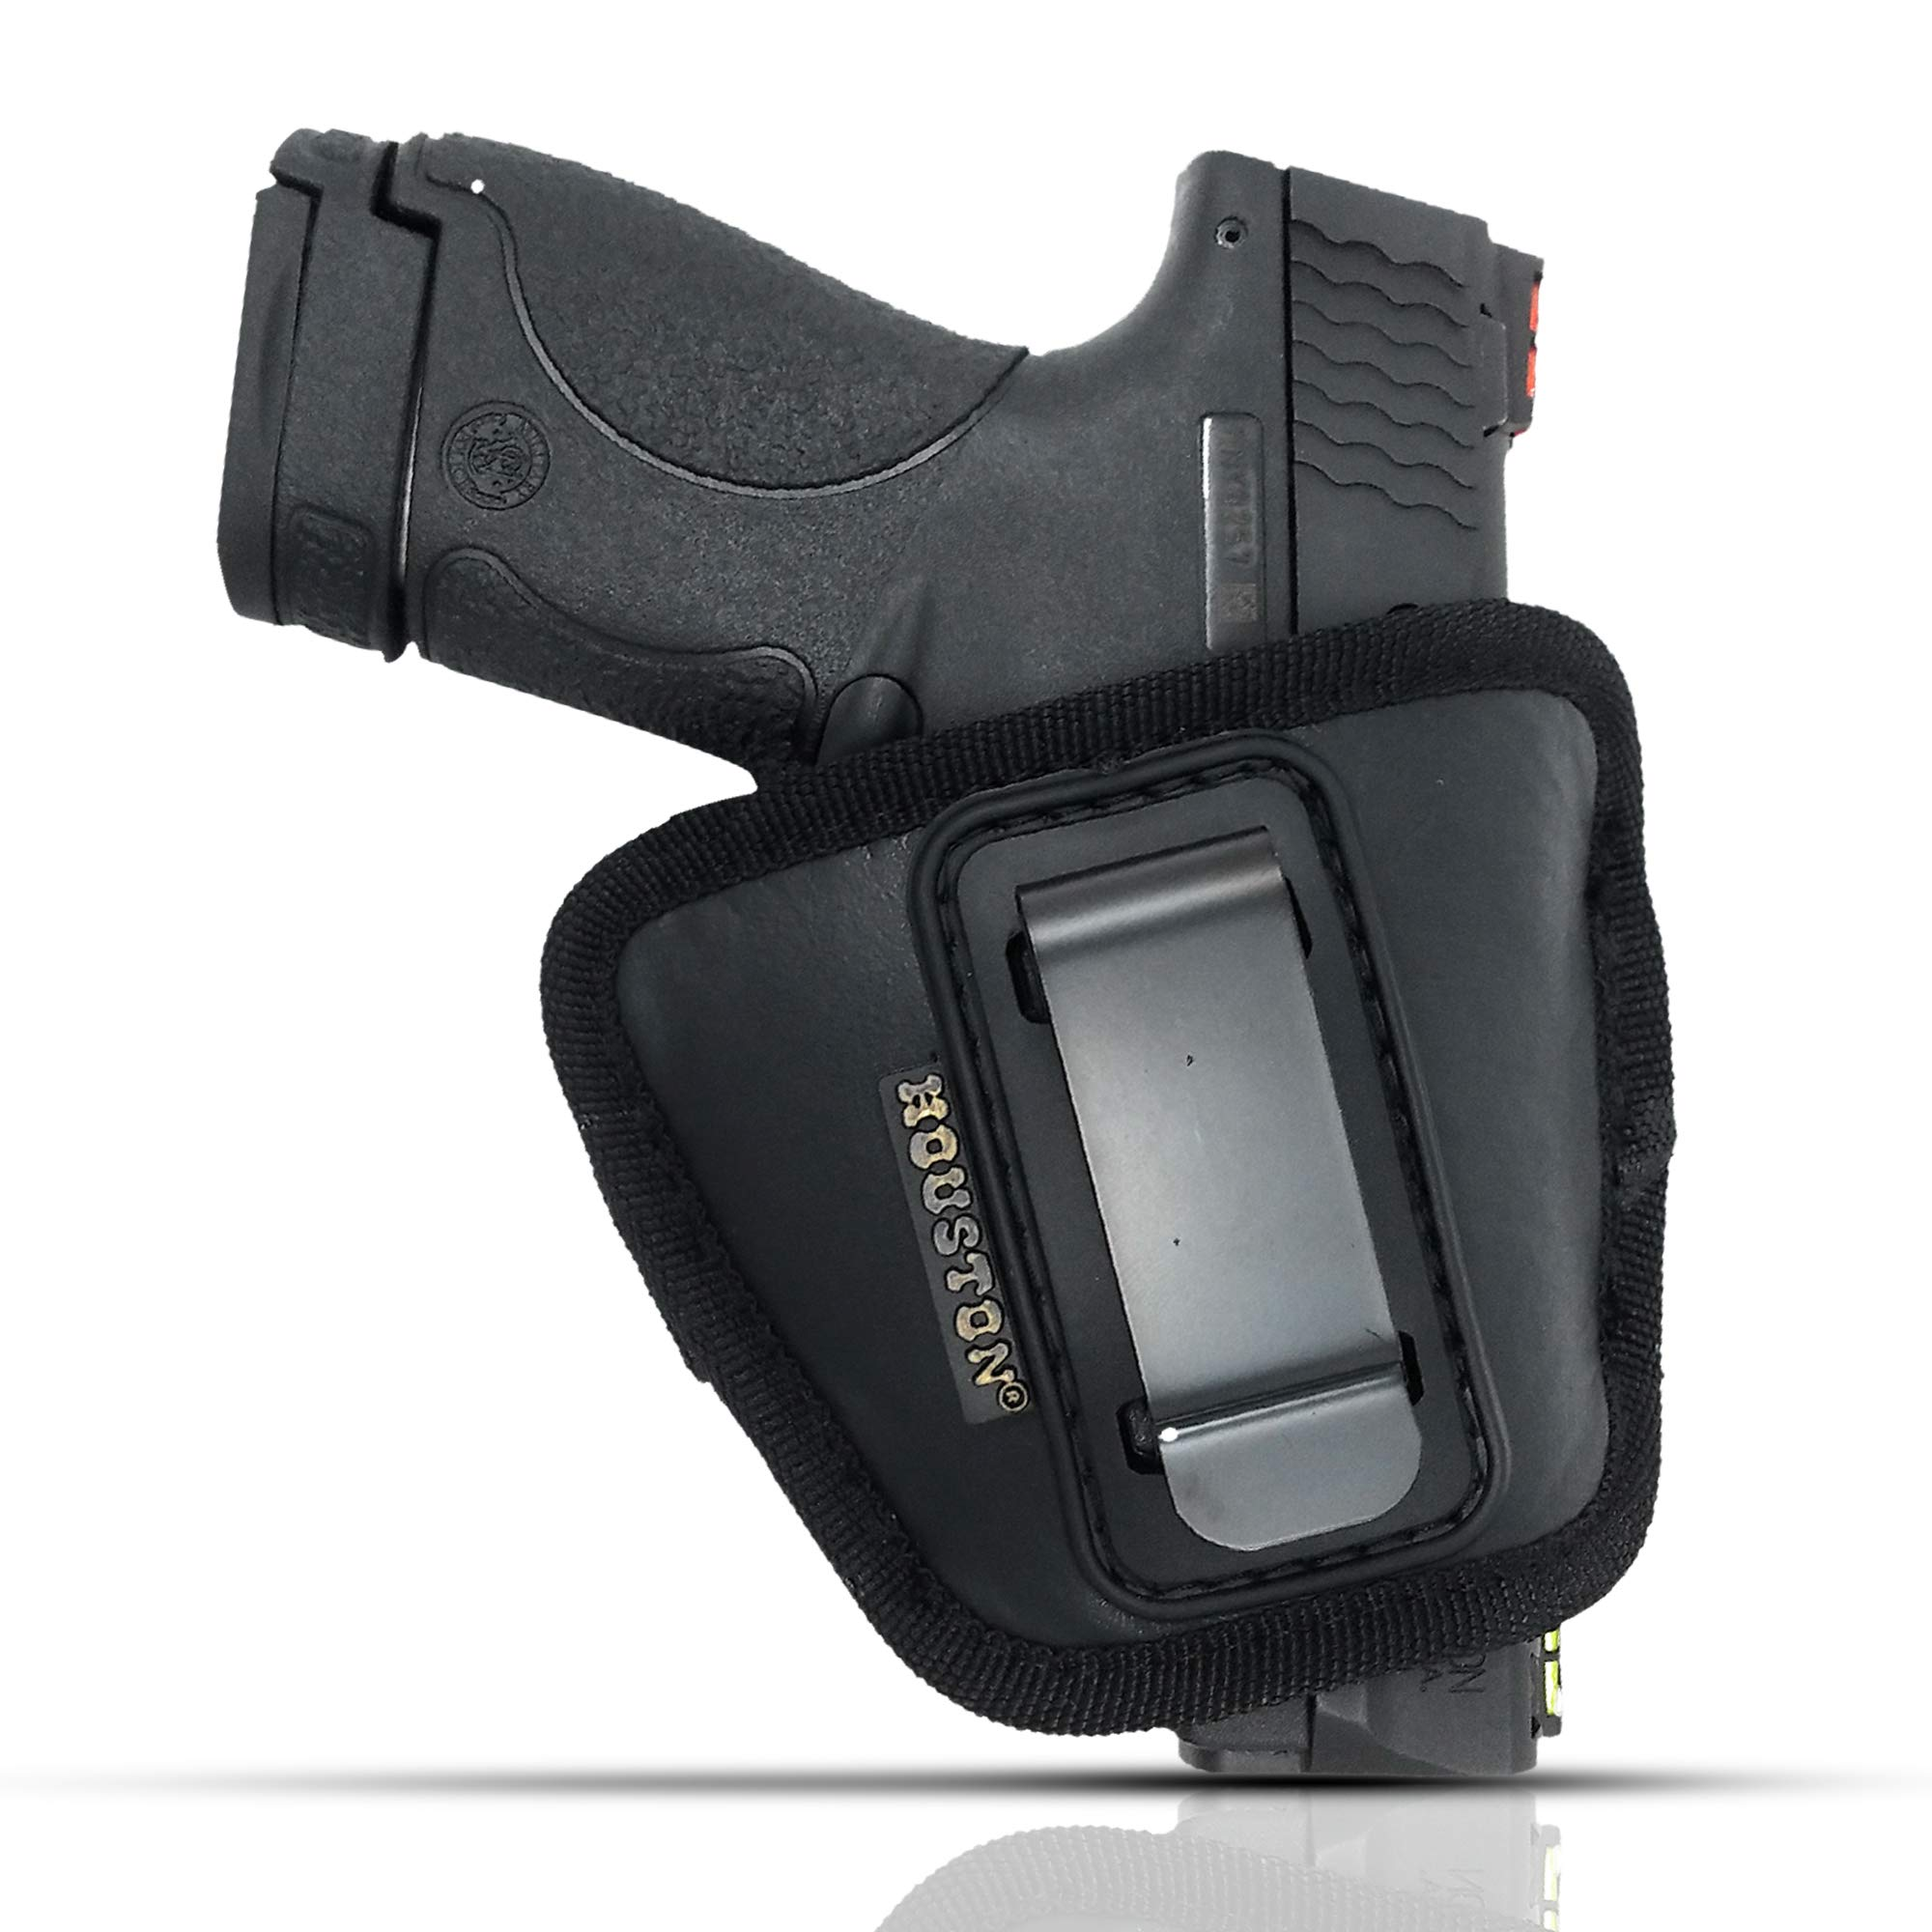 IWB and Outside Gun Holster by Houston - ECO Leather Concealed Carry Soft Material | Fits Glock 26/27/33, Shield, XDS, Taurus 709, Taurus Pro C, Walther P22, Beretta Nano, SCCY Sky.Ruger LC9 by Houston Gun Holsters